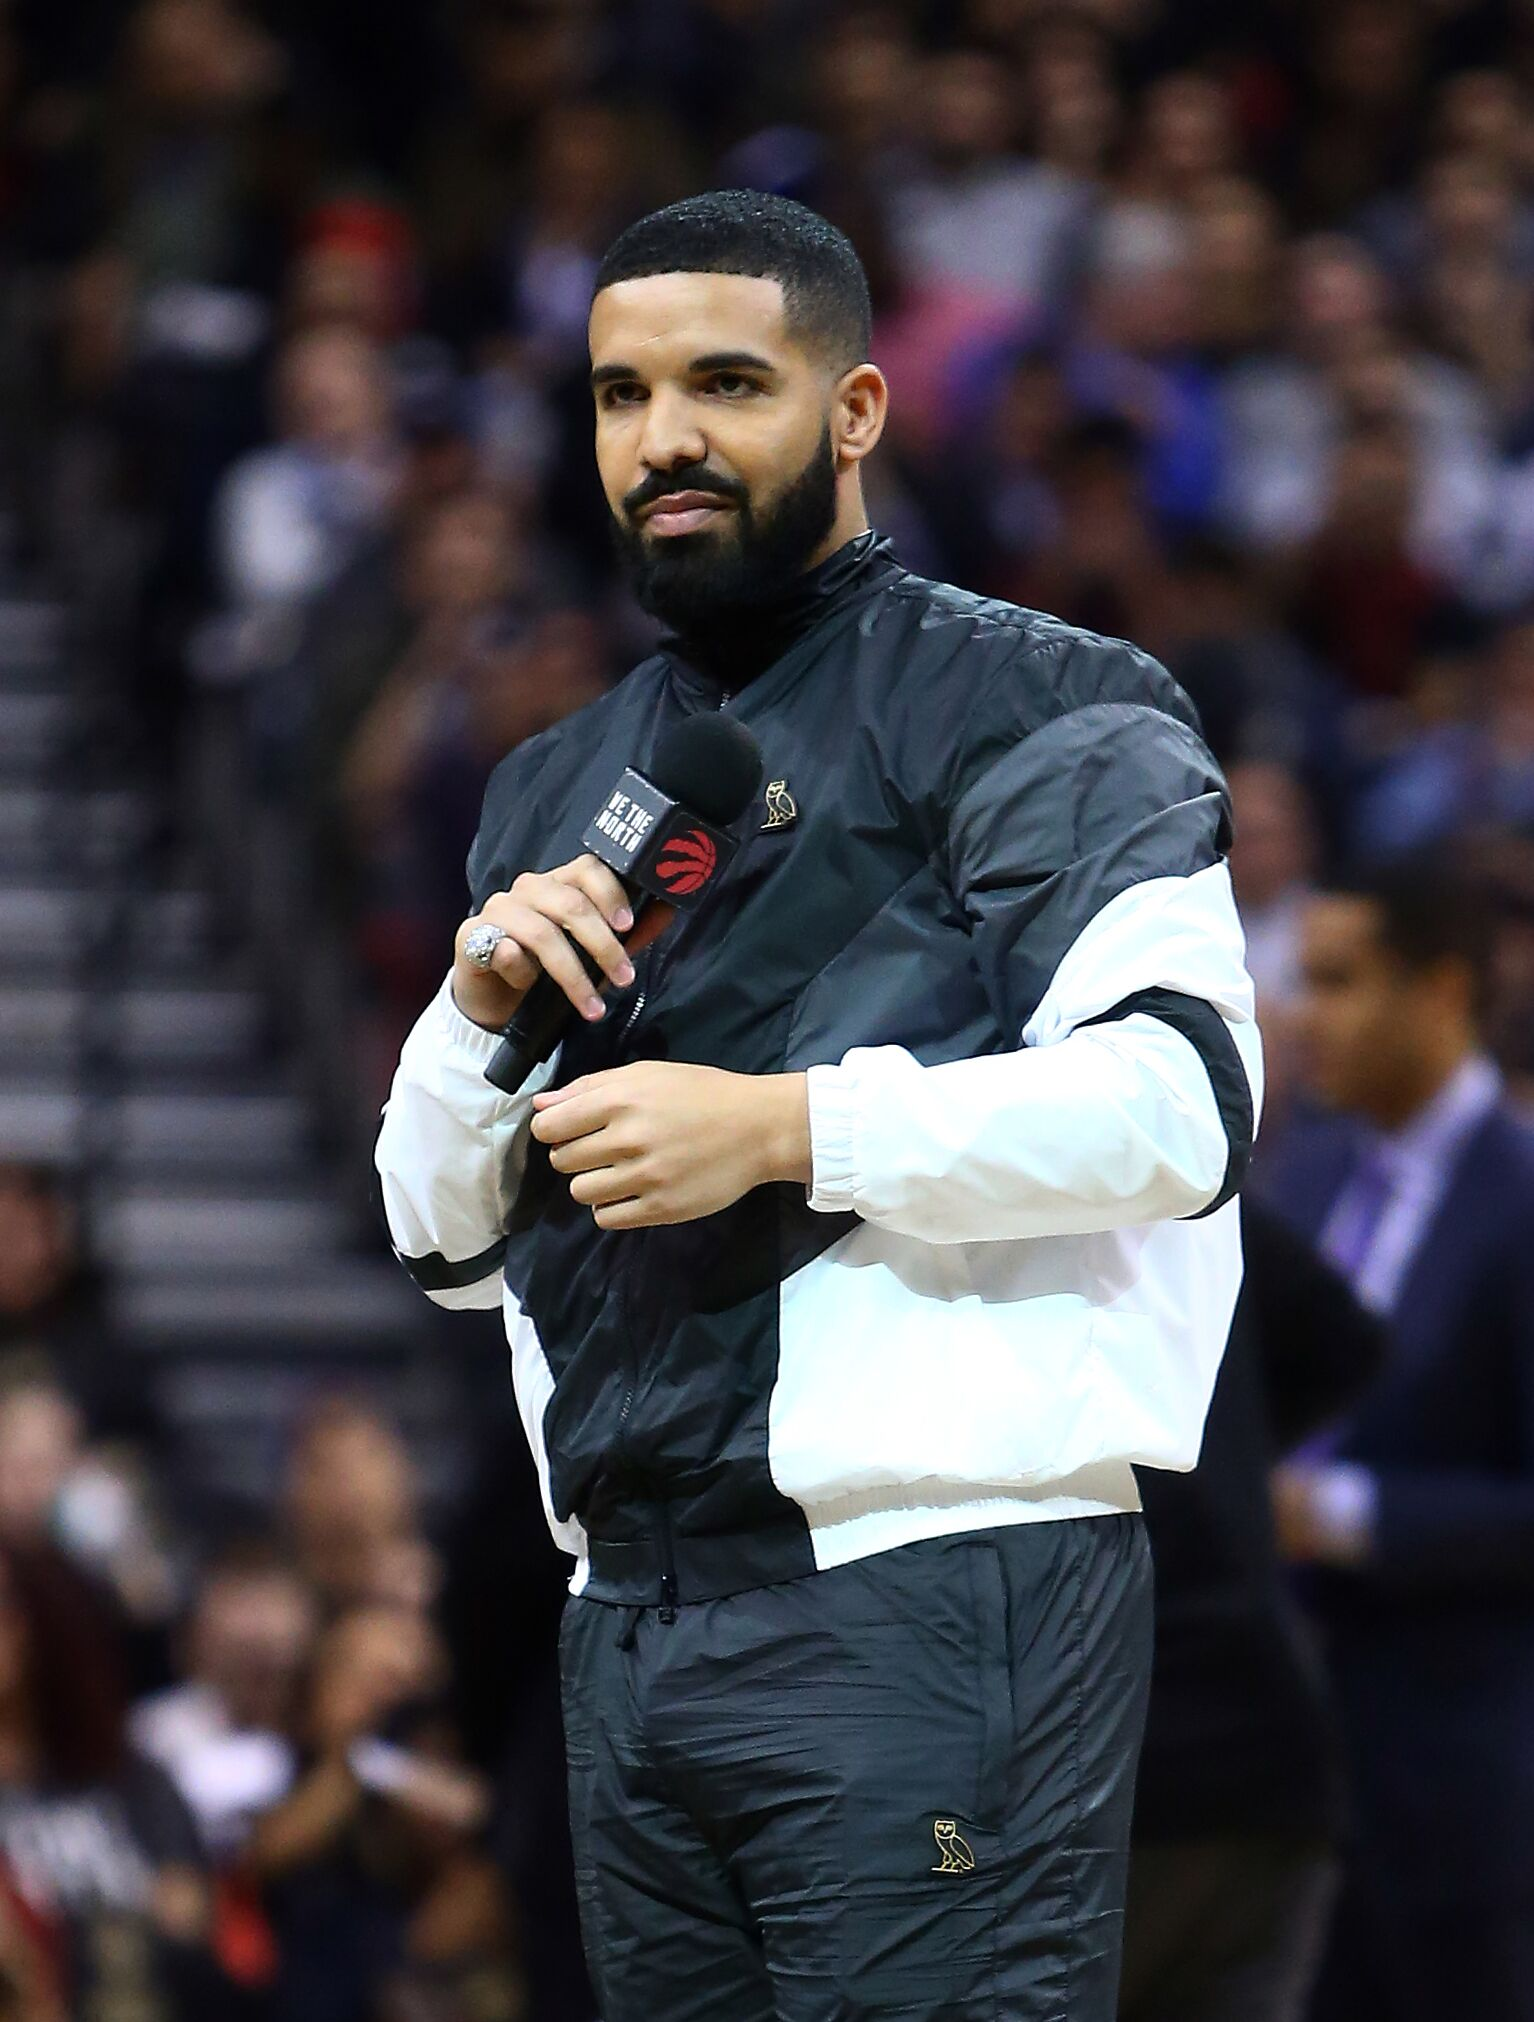 Drake, Toronto Raptors Ambassador, speaks to the crowd on 'Drake Night' during the first half of an NBA game | Getty Images